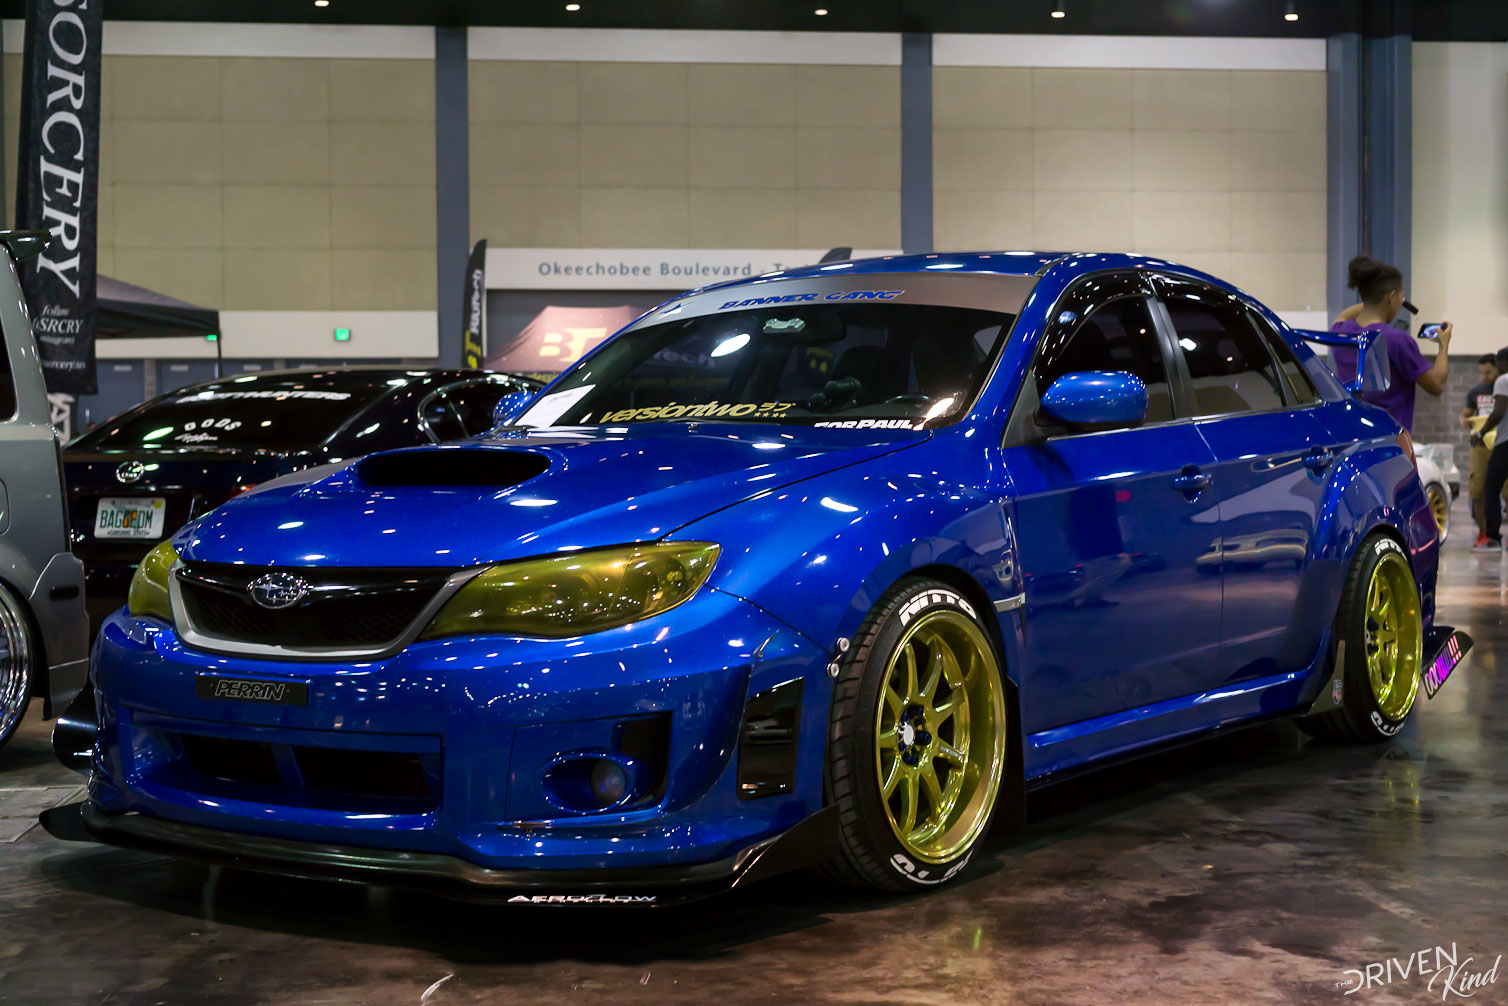 Subaru STI STANCENATION FLORIDA PALM BEACH CONVENTION CENTER 2017 Pt. 2 The Driven Kind Coverage